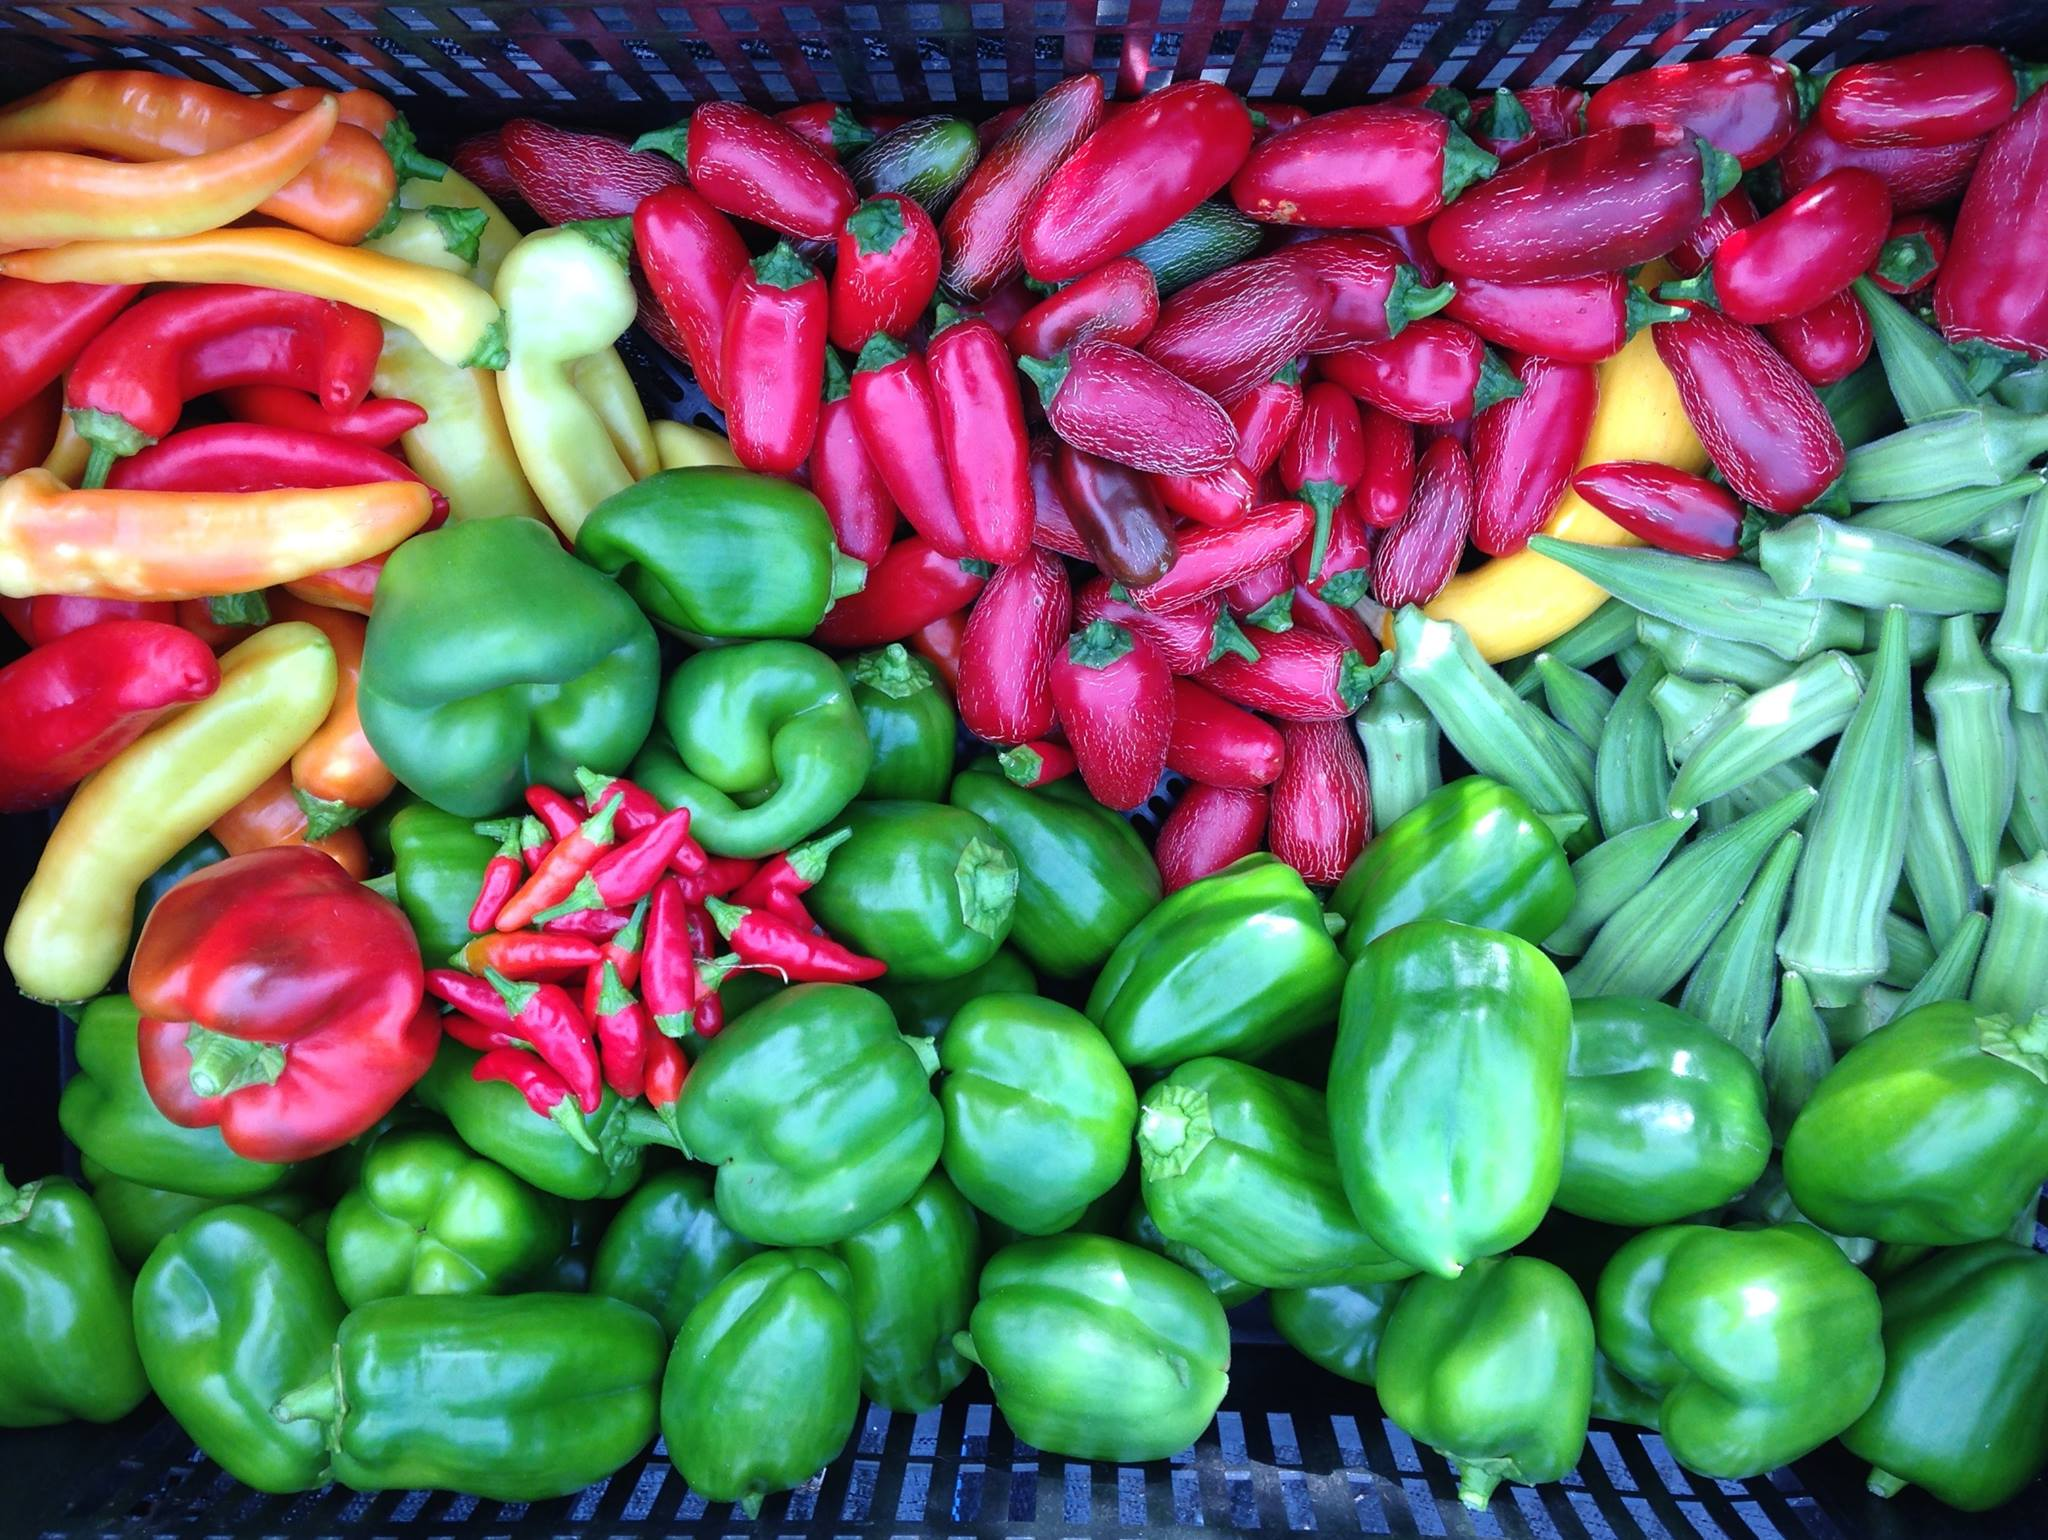 Peppers grown at the Strength to Love 2 farm